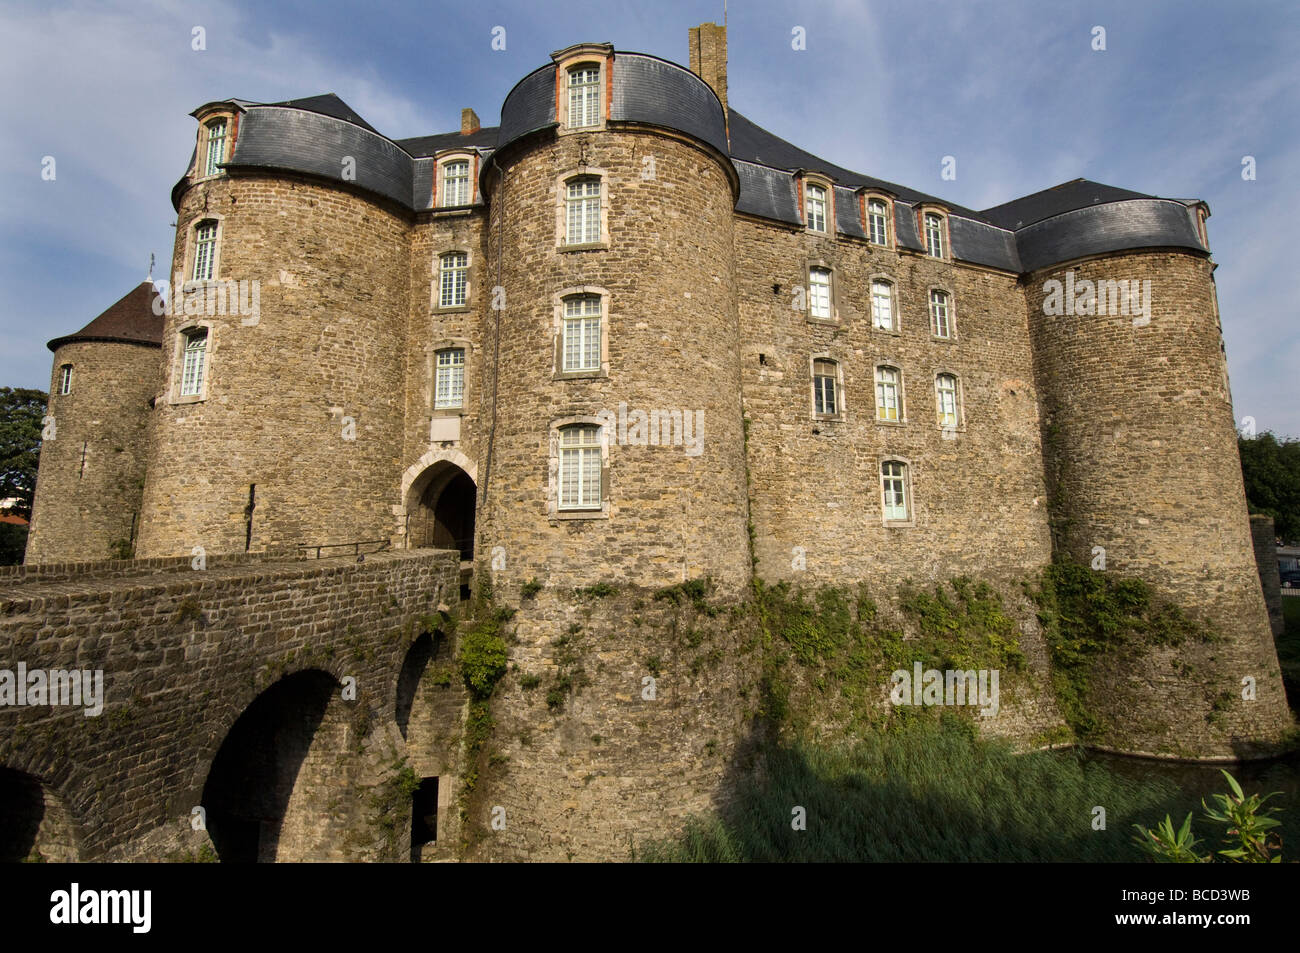 Boulogne Castle showing the moat in the old town of Boulogne Northern France - Stock Image